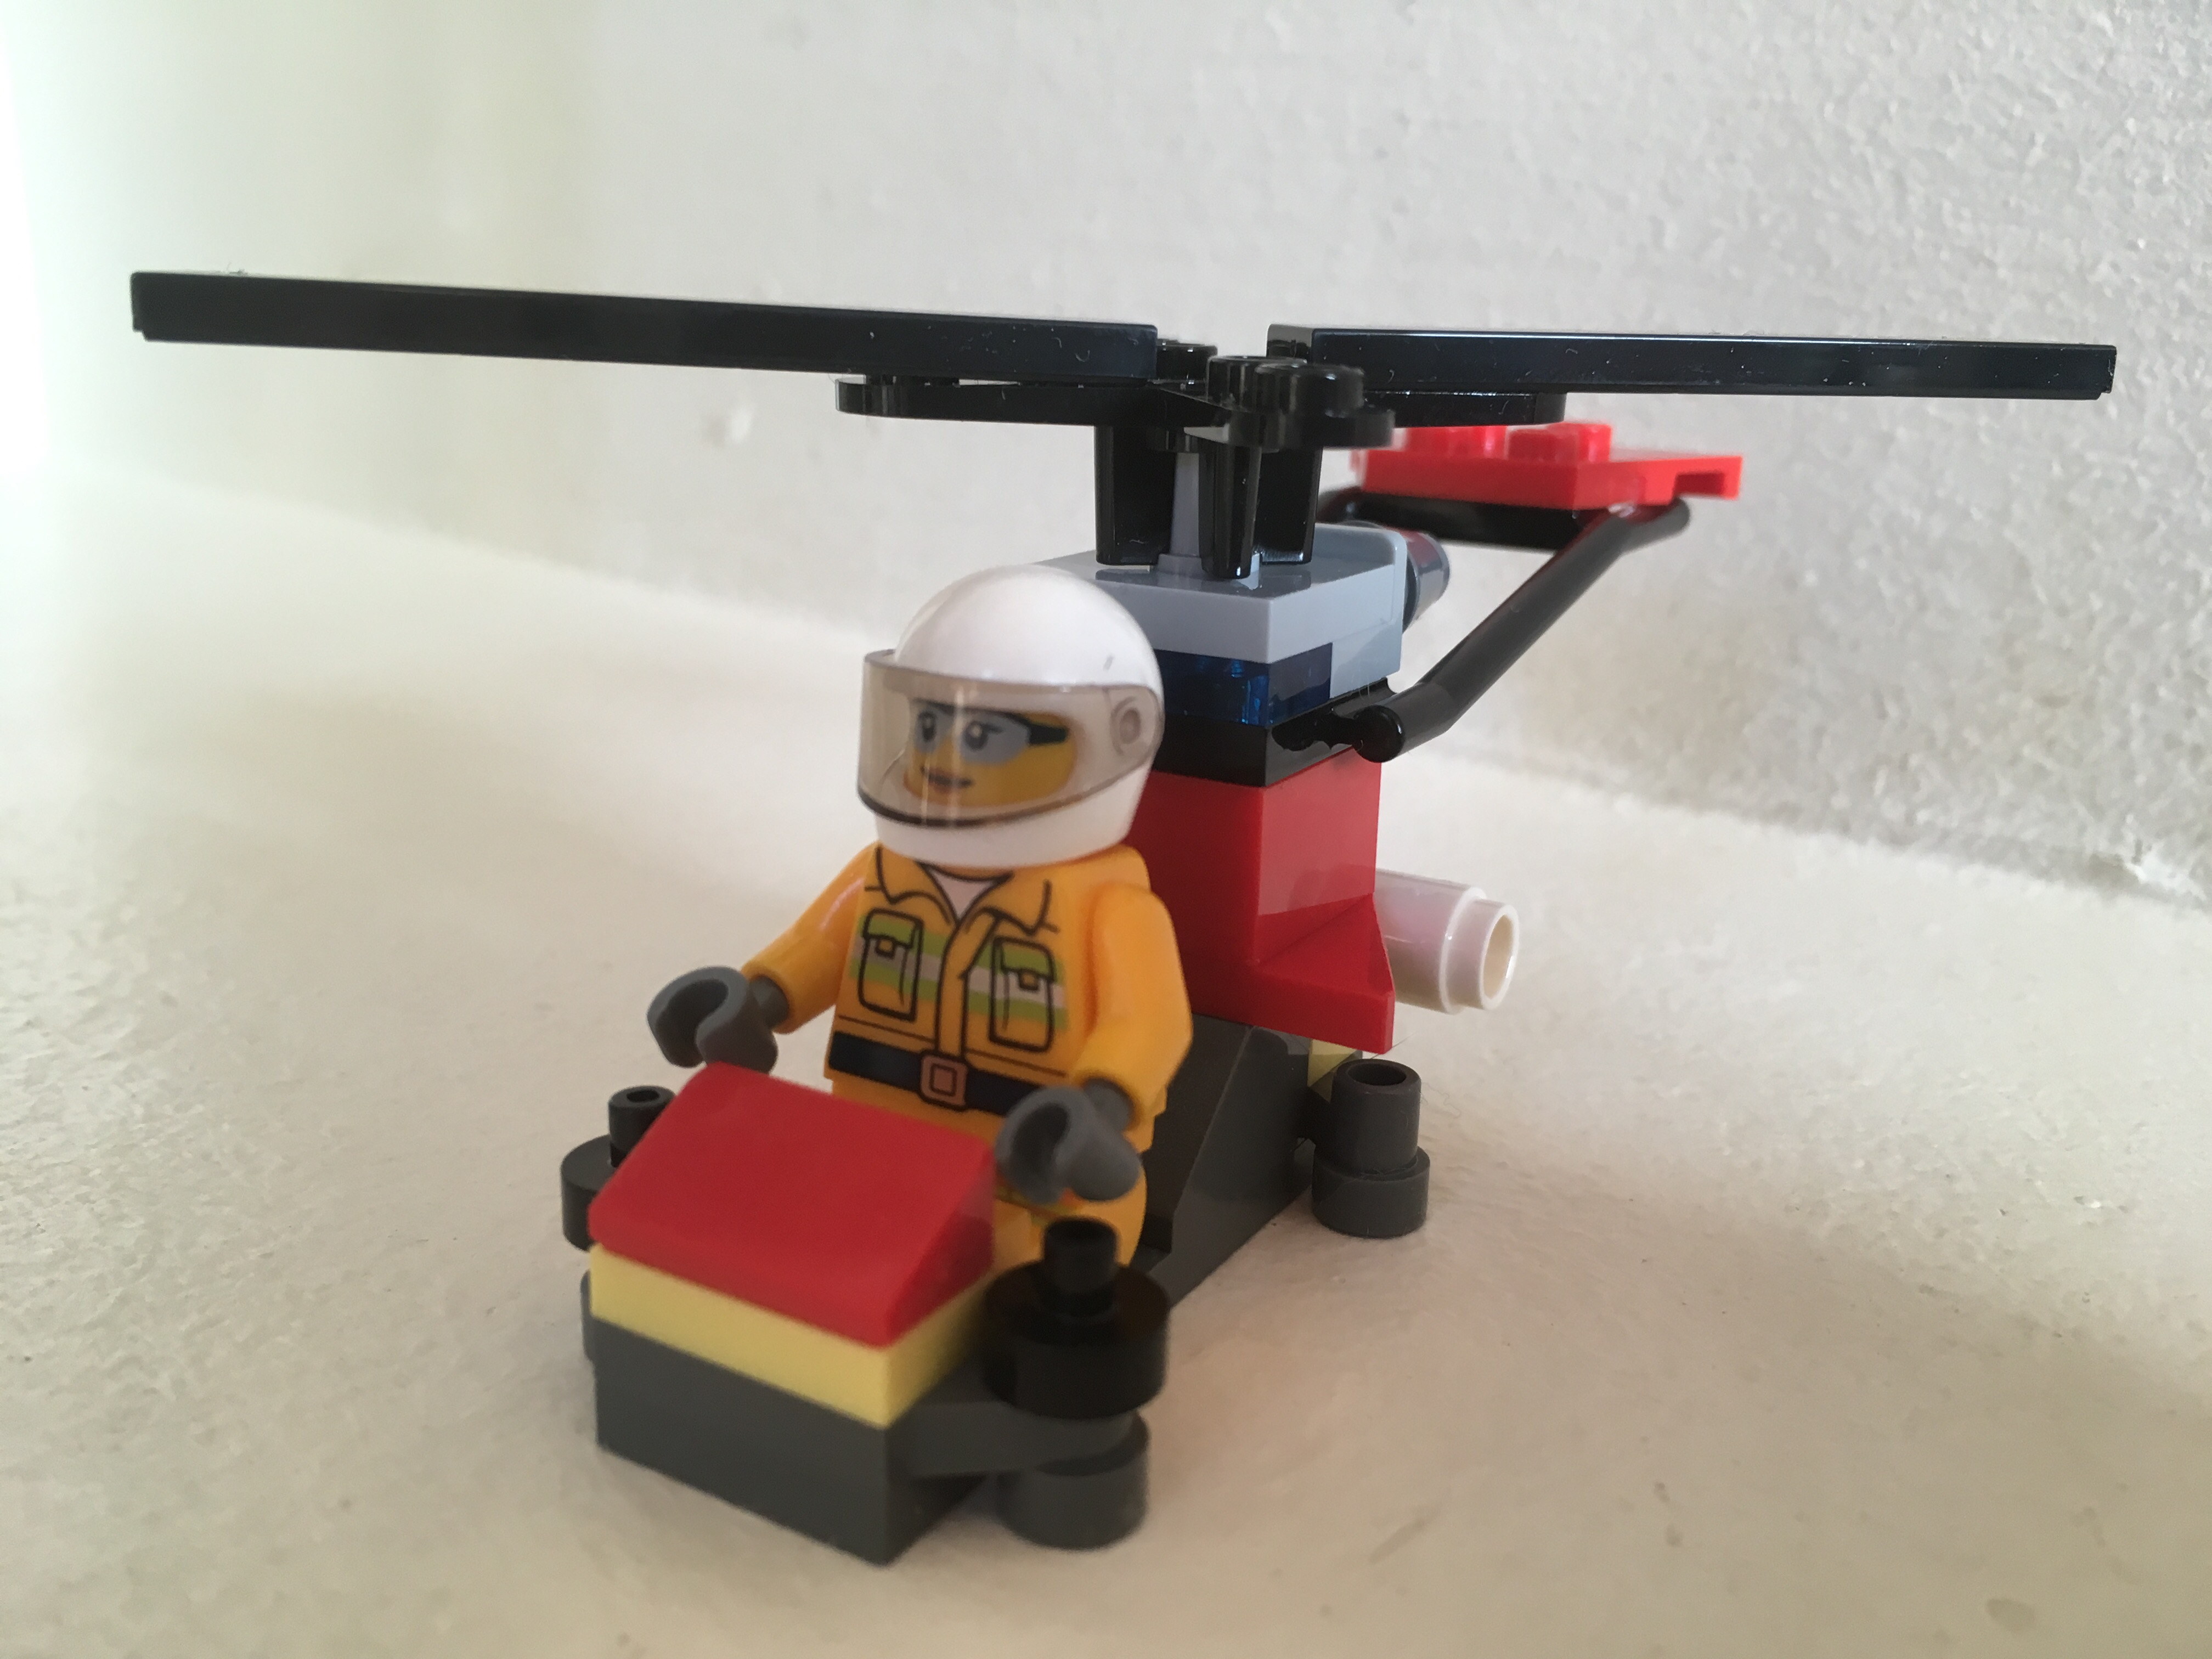 Lego Firefighter Minifigure with helicopter